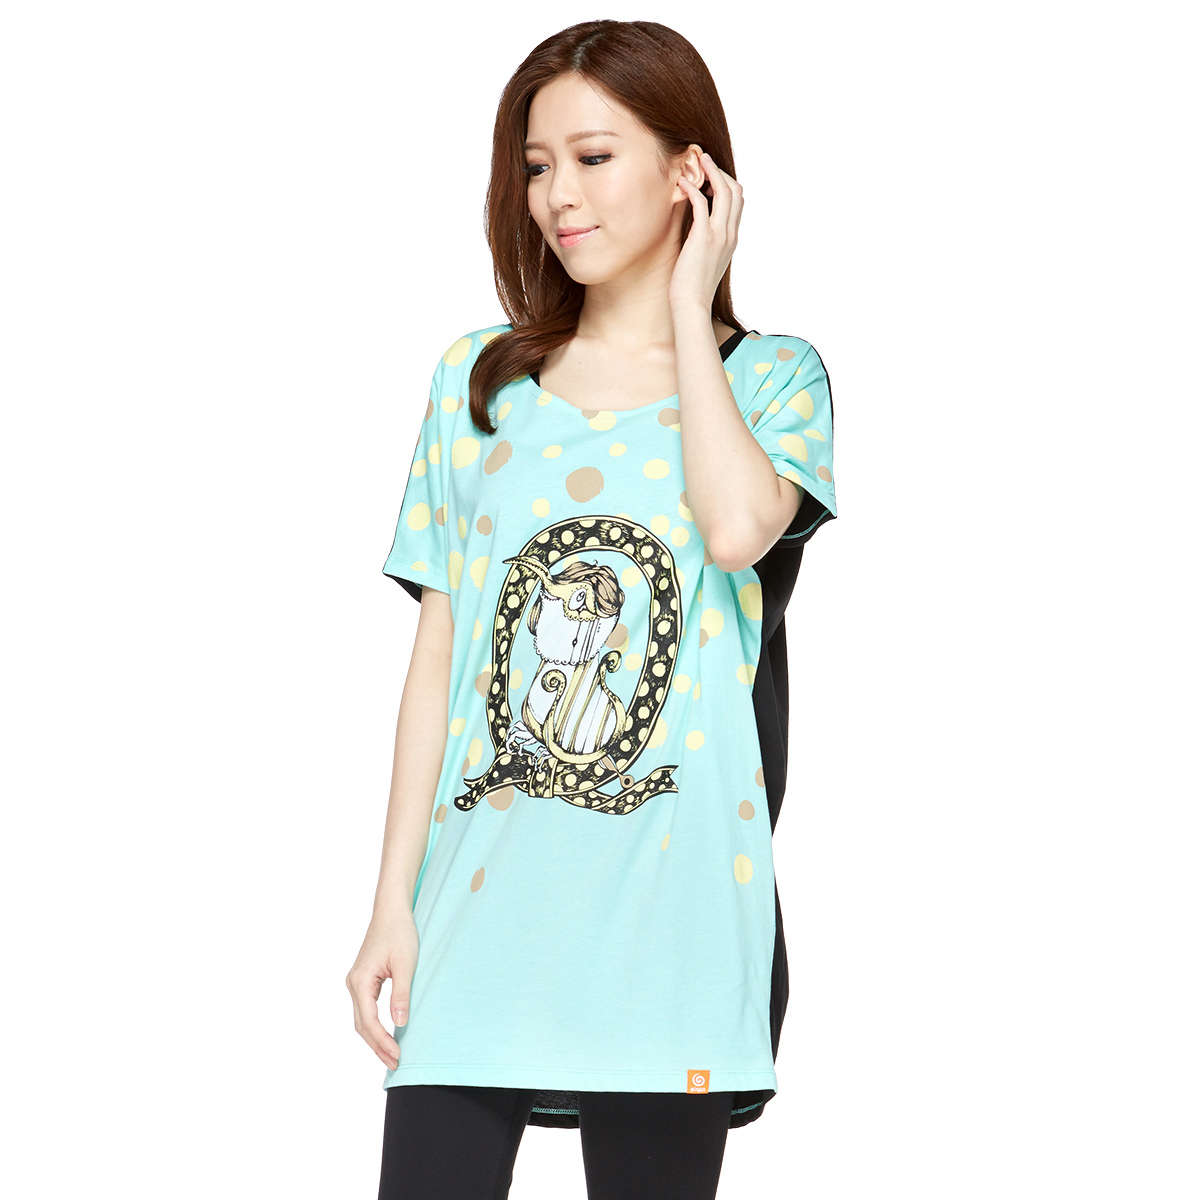 Birdi in the ribbon Lady Loose Long Tee